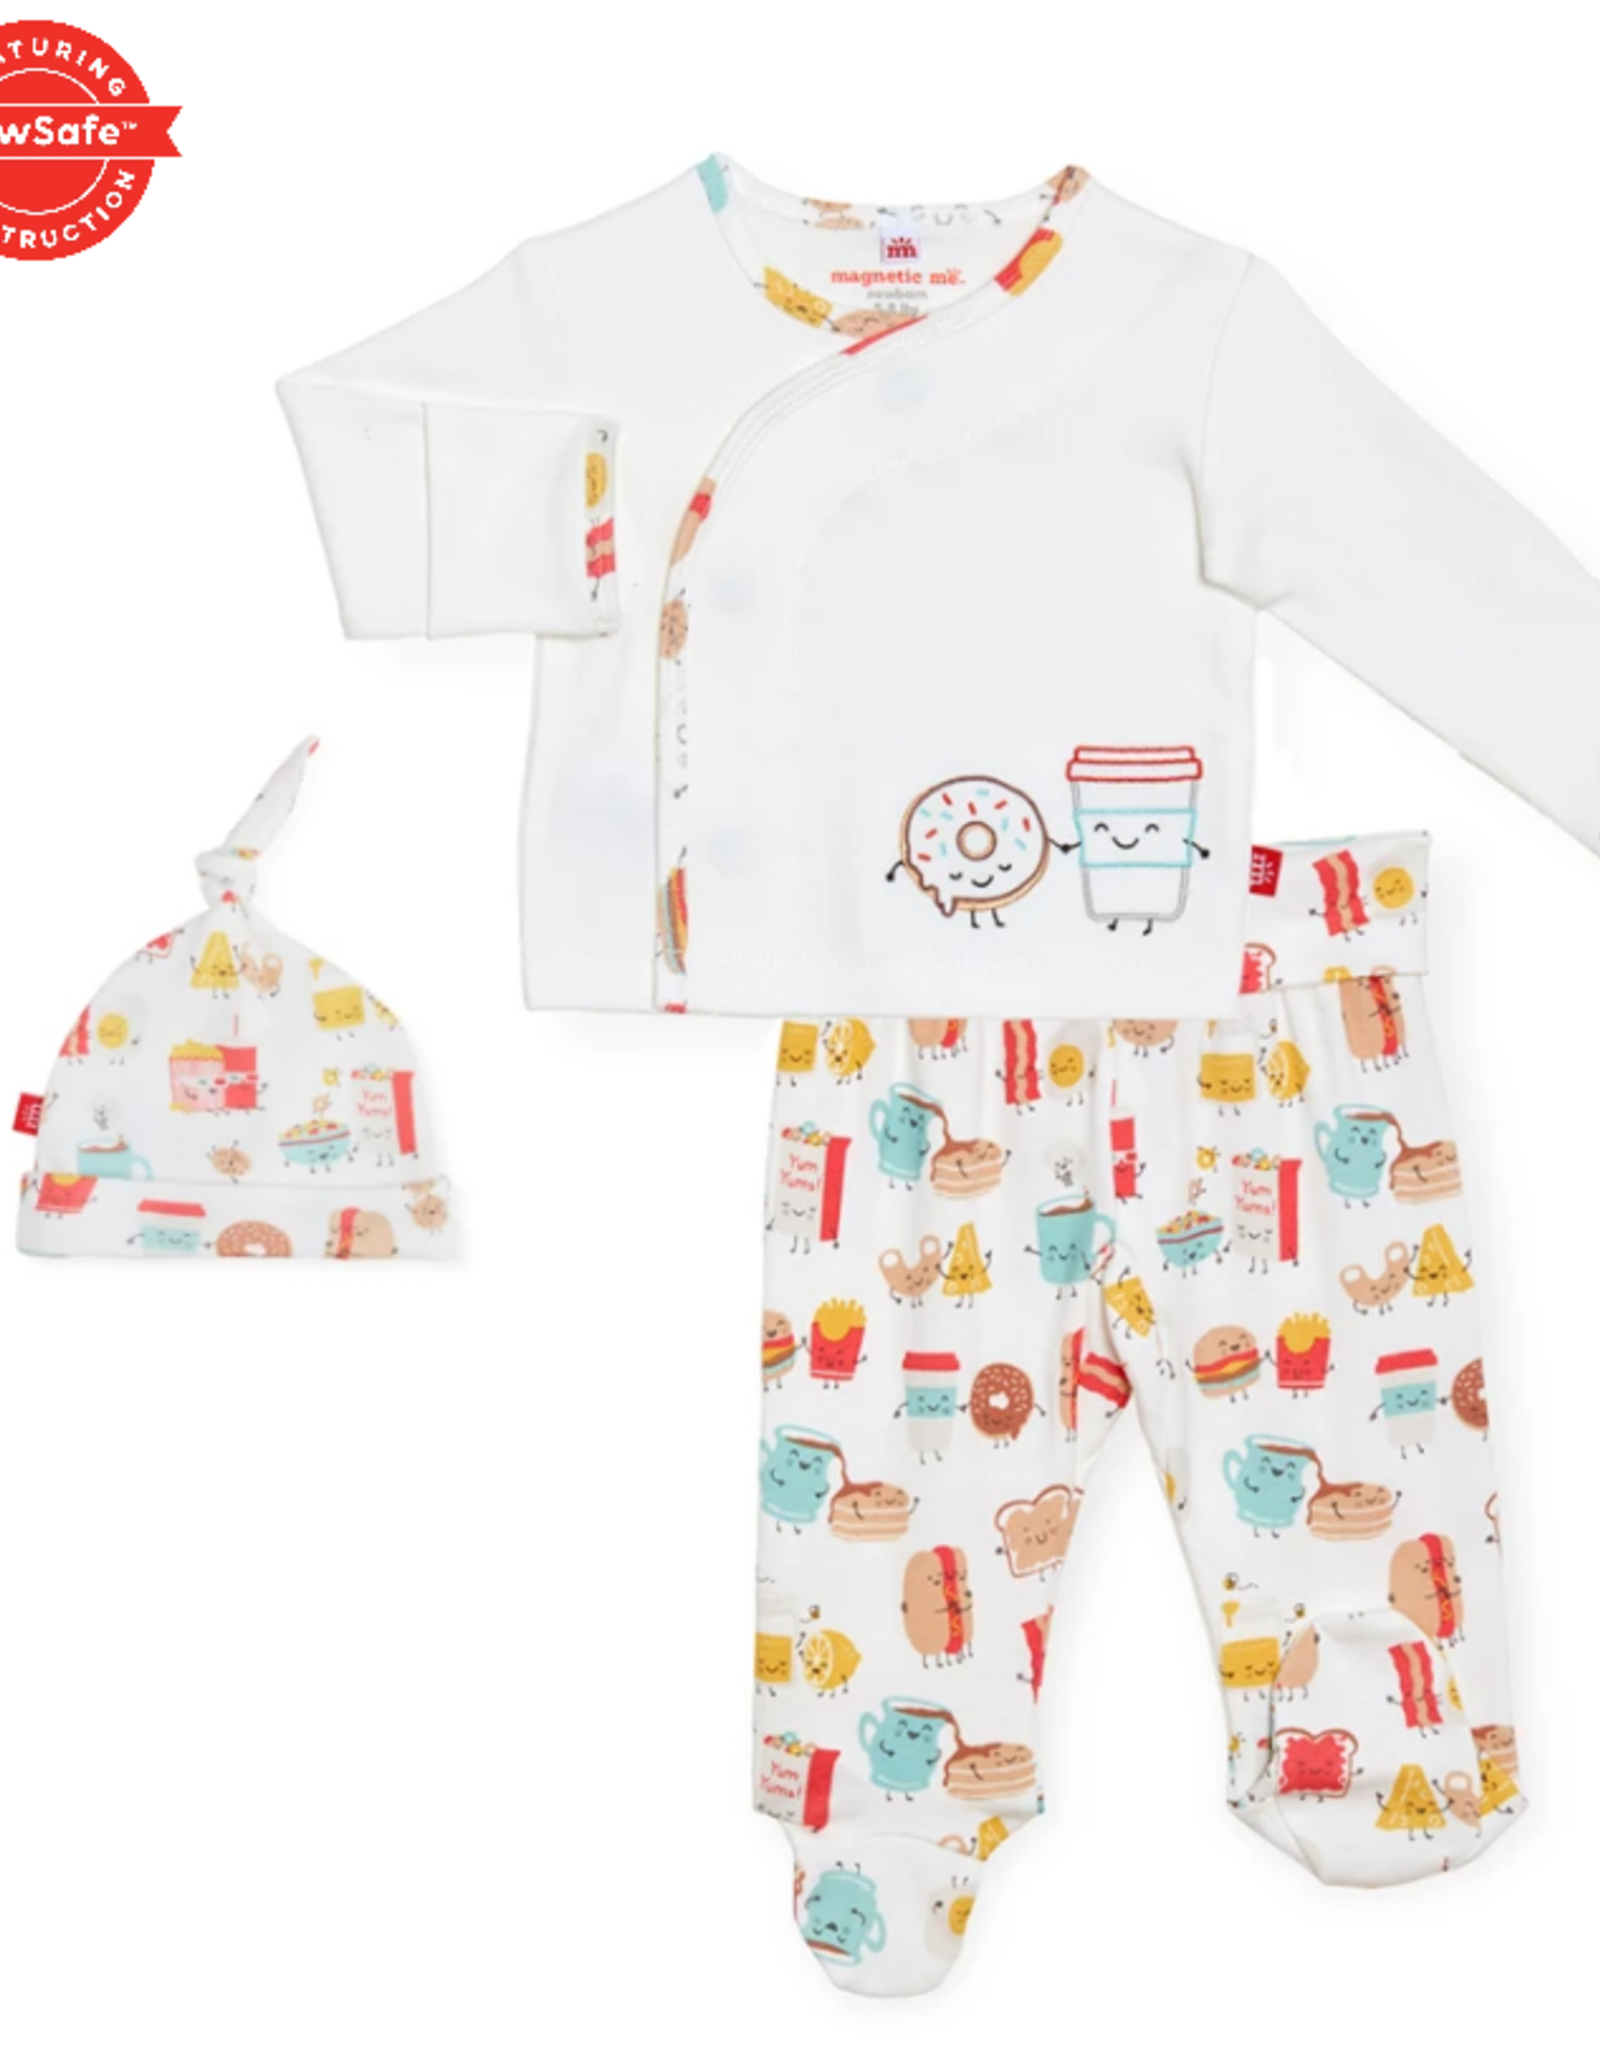 Magnificent Baby Better Together Kimono Set